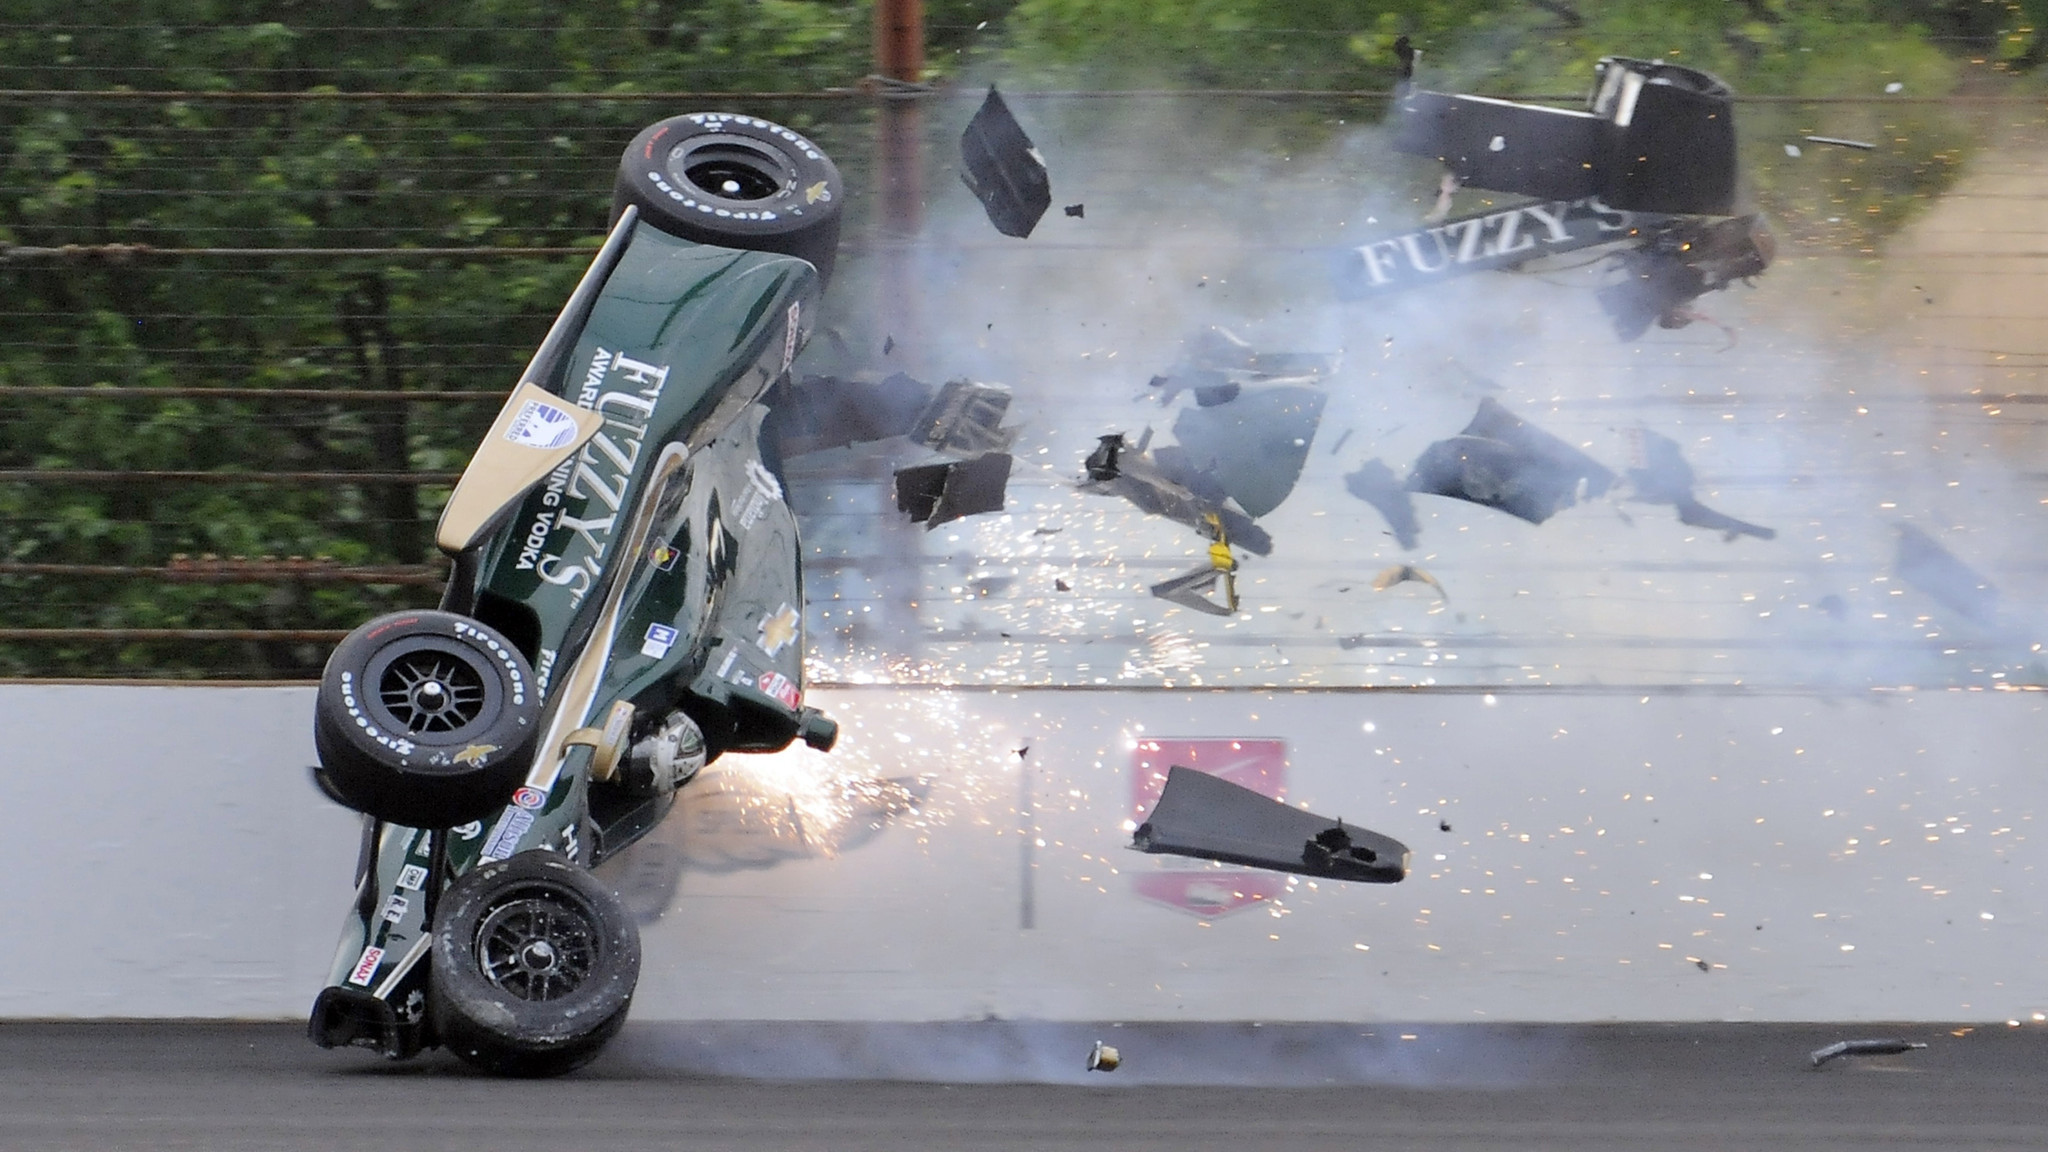 Carpenter Indianapolis  IndyCar Series makes changes to cars after Ed Carpenter practice crash - LA Times